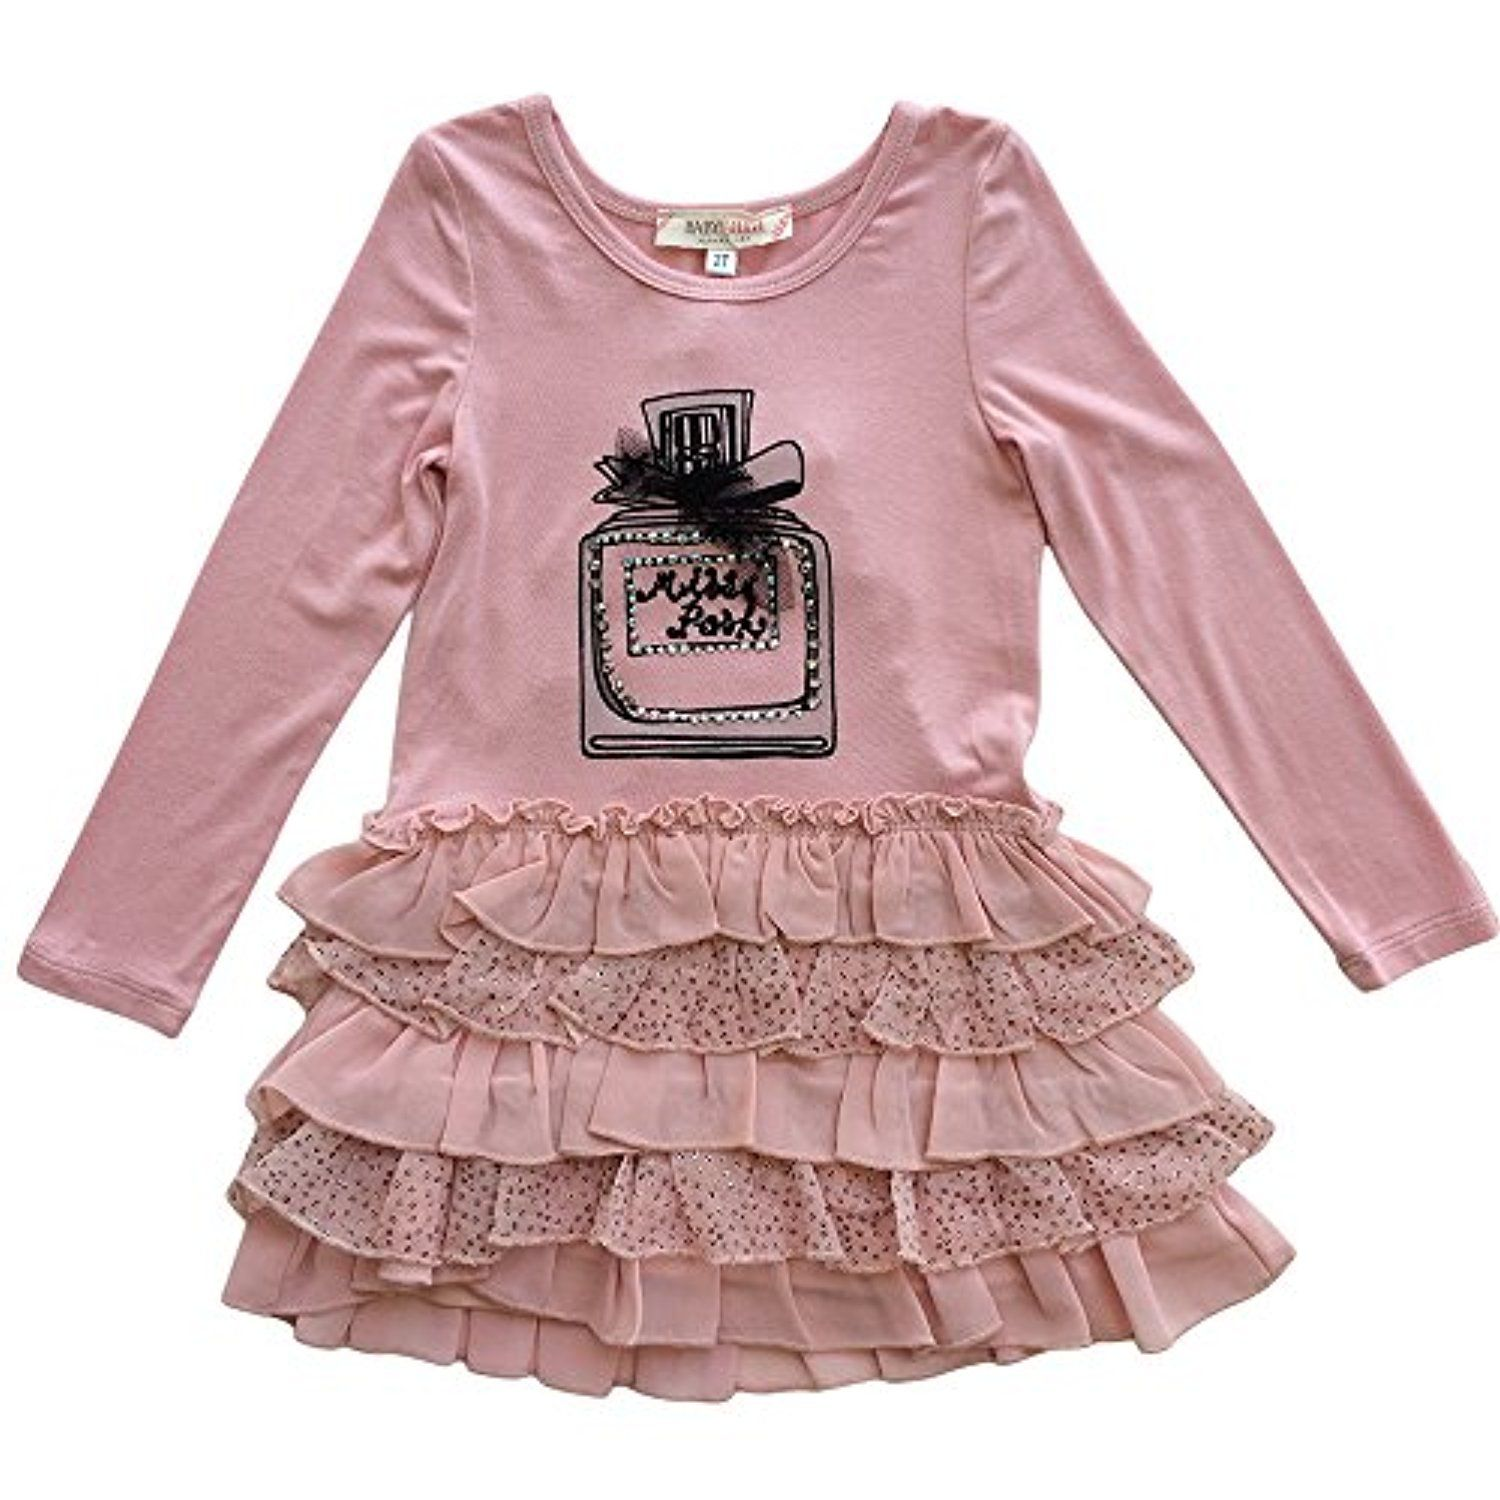 Baby Sara Girls Graphic Perfum Bottle Dress Pink Awesome products